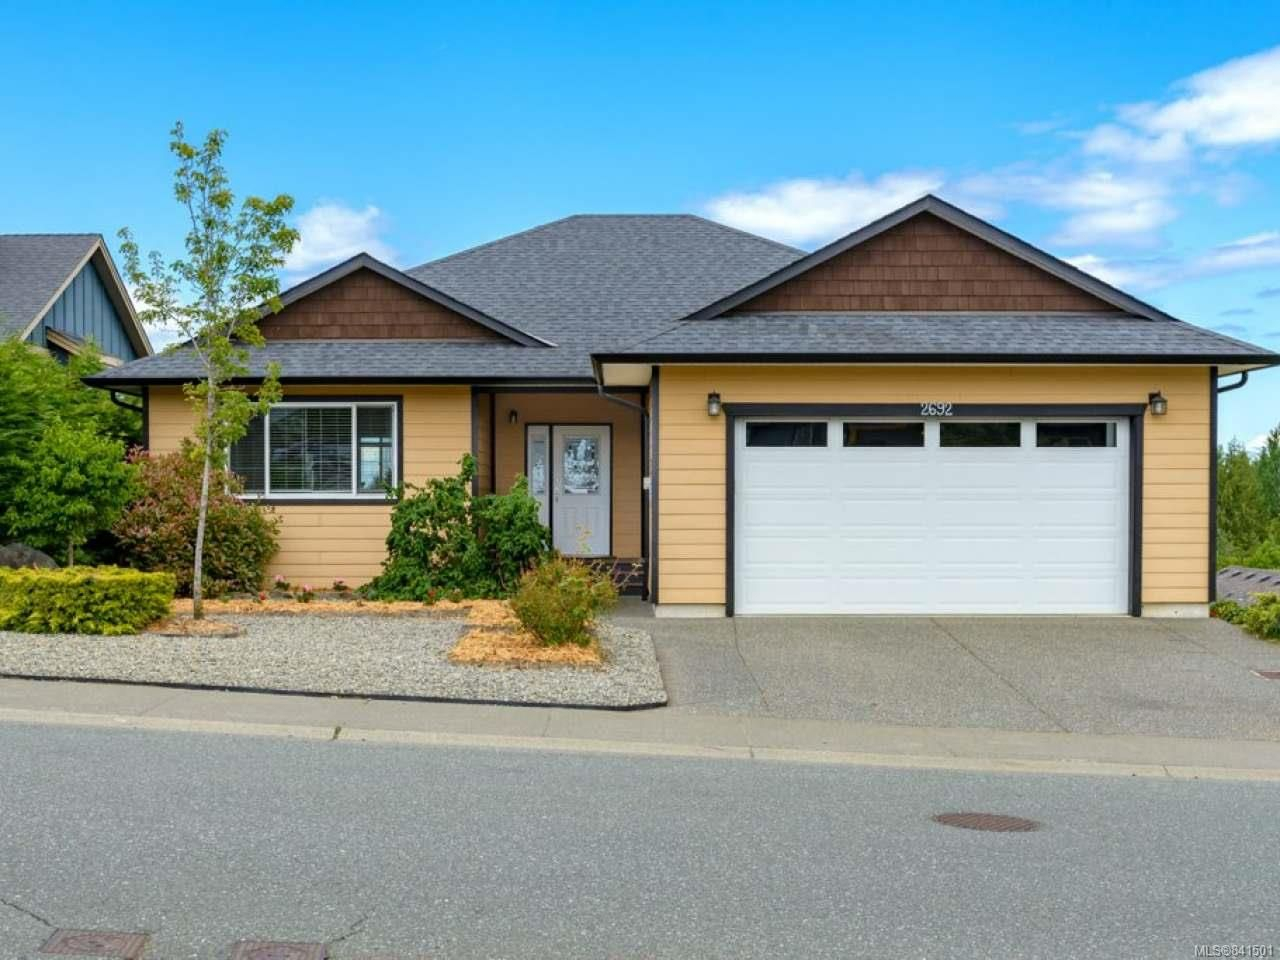 Main Photo: 2692 Rydal Ave in CUMBERLAND: CV Cumberland House for sale (Comox Valley)  : MLS®# 841501